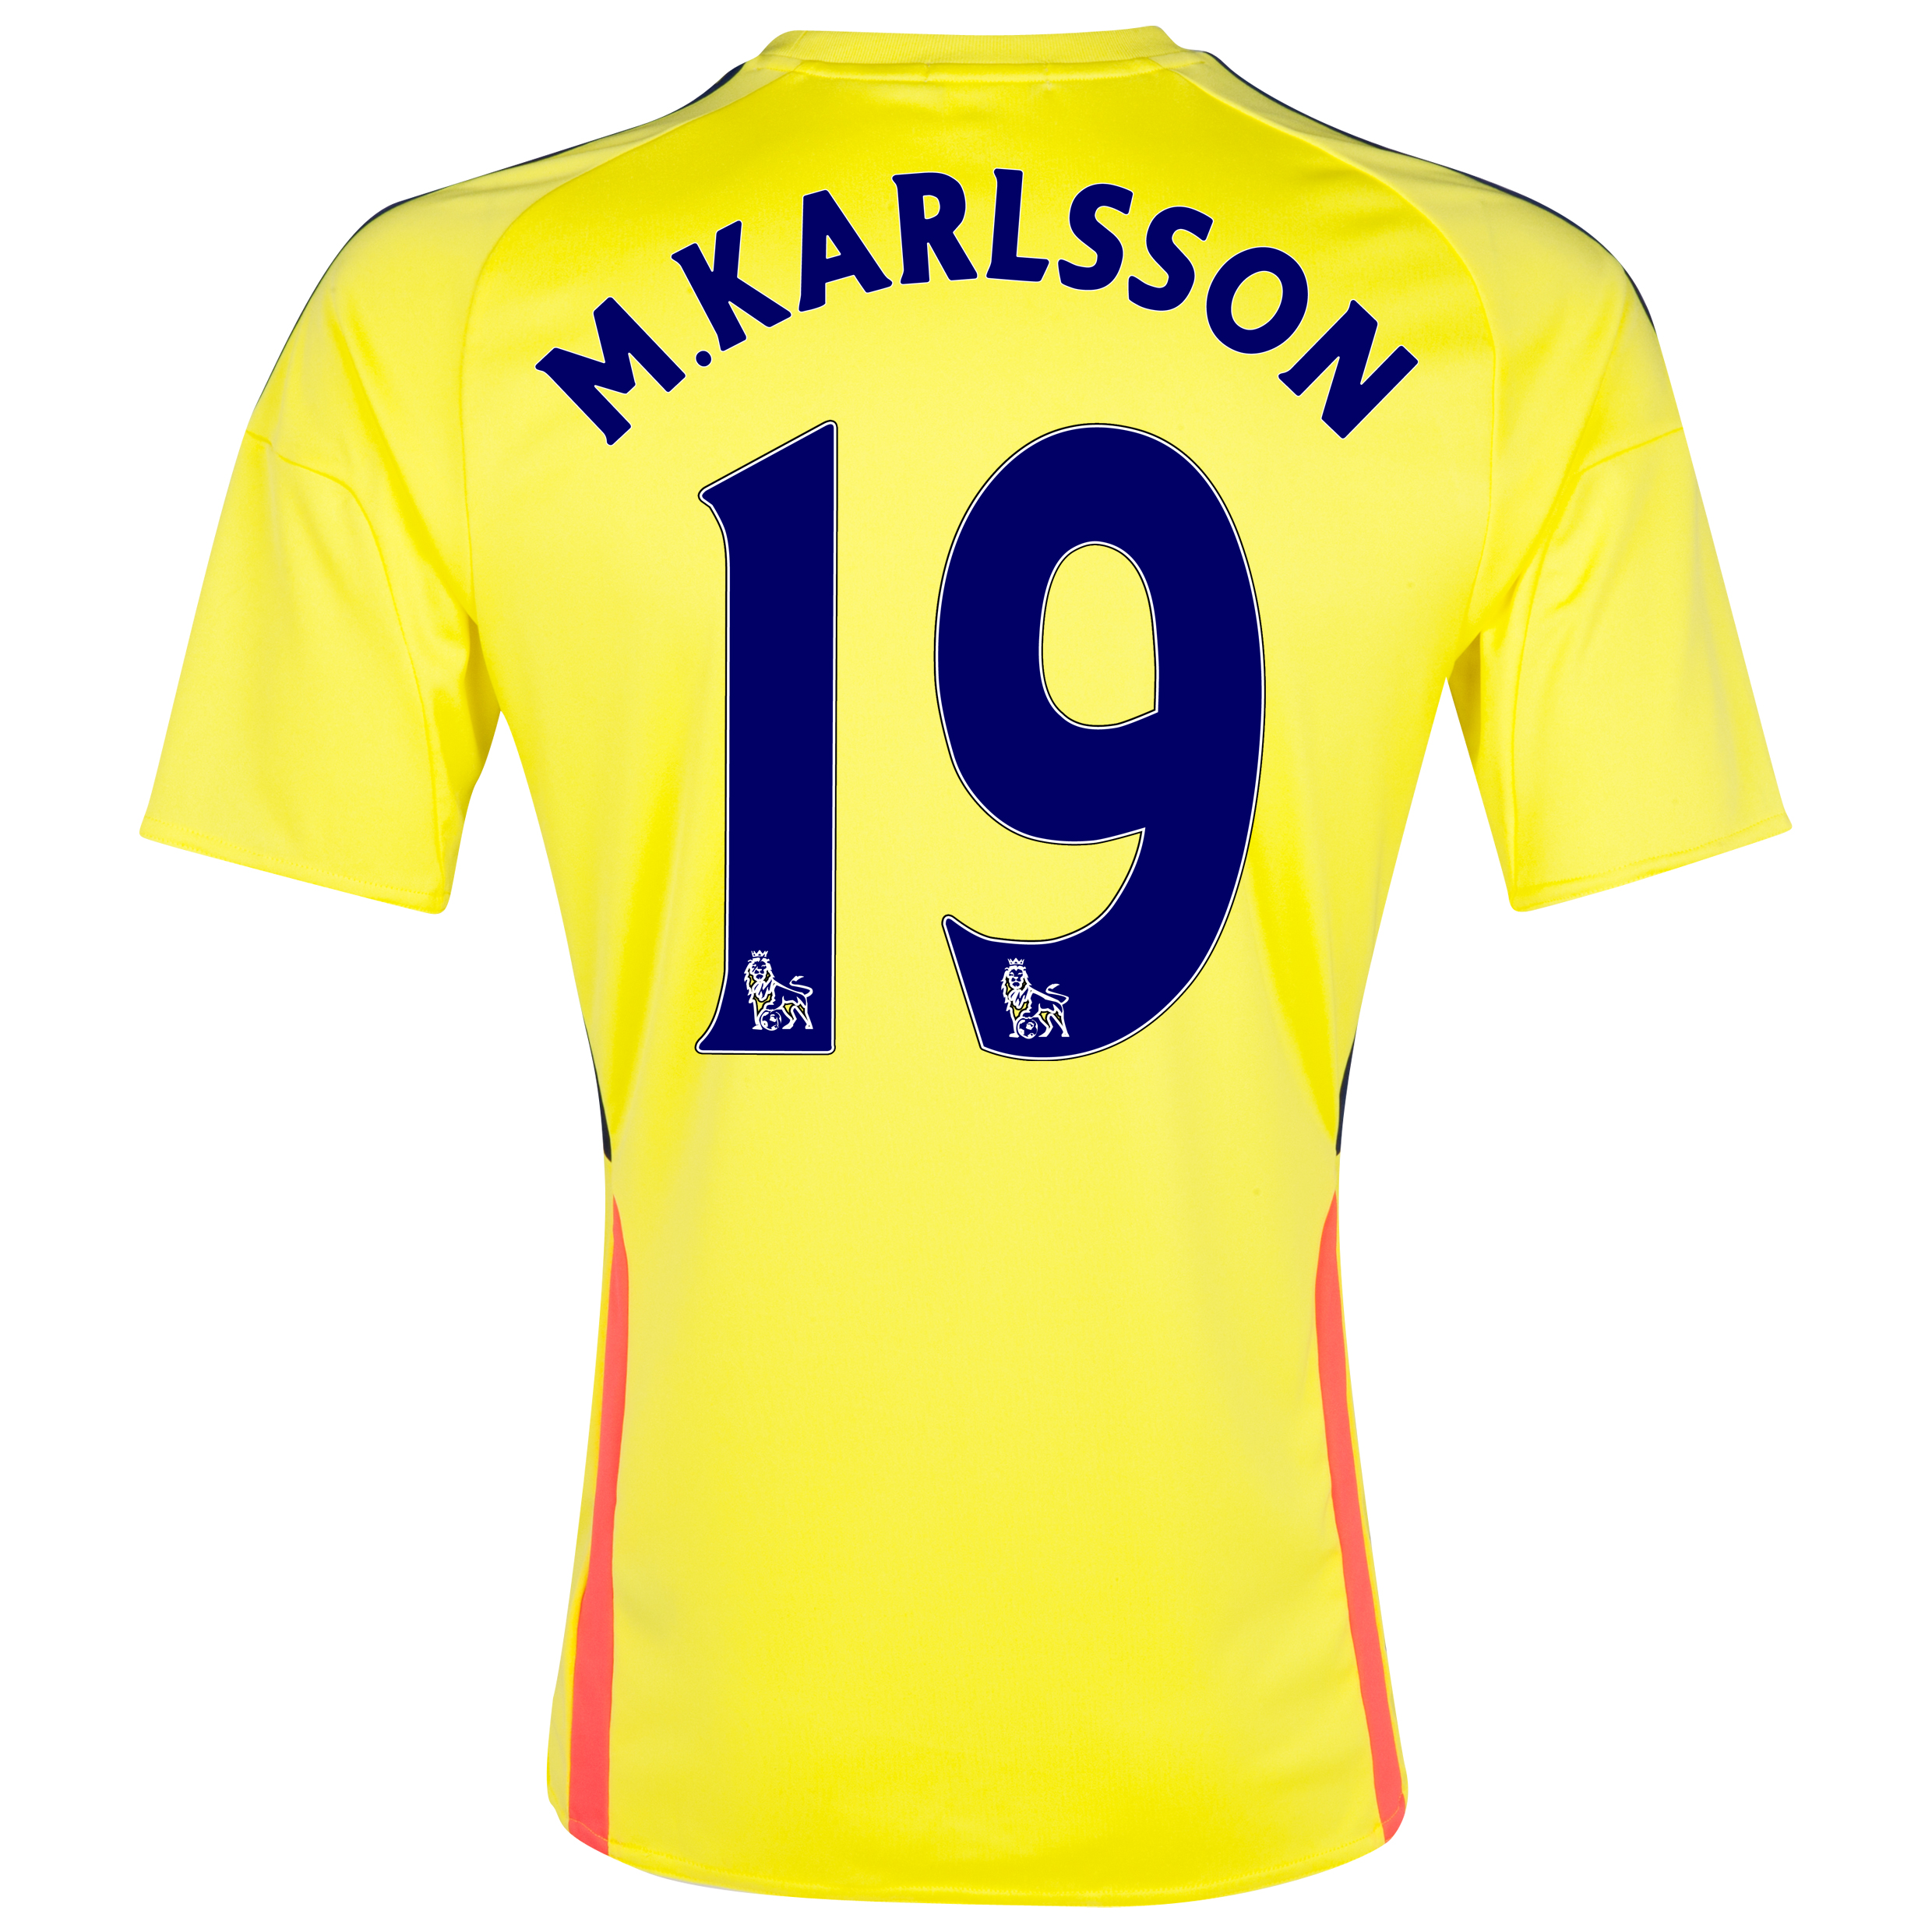 Sunderland Away Shirt 2013/14 with M.Karlsson 19 printing